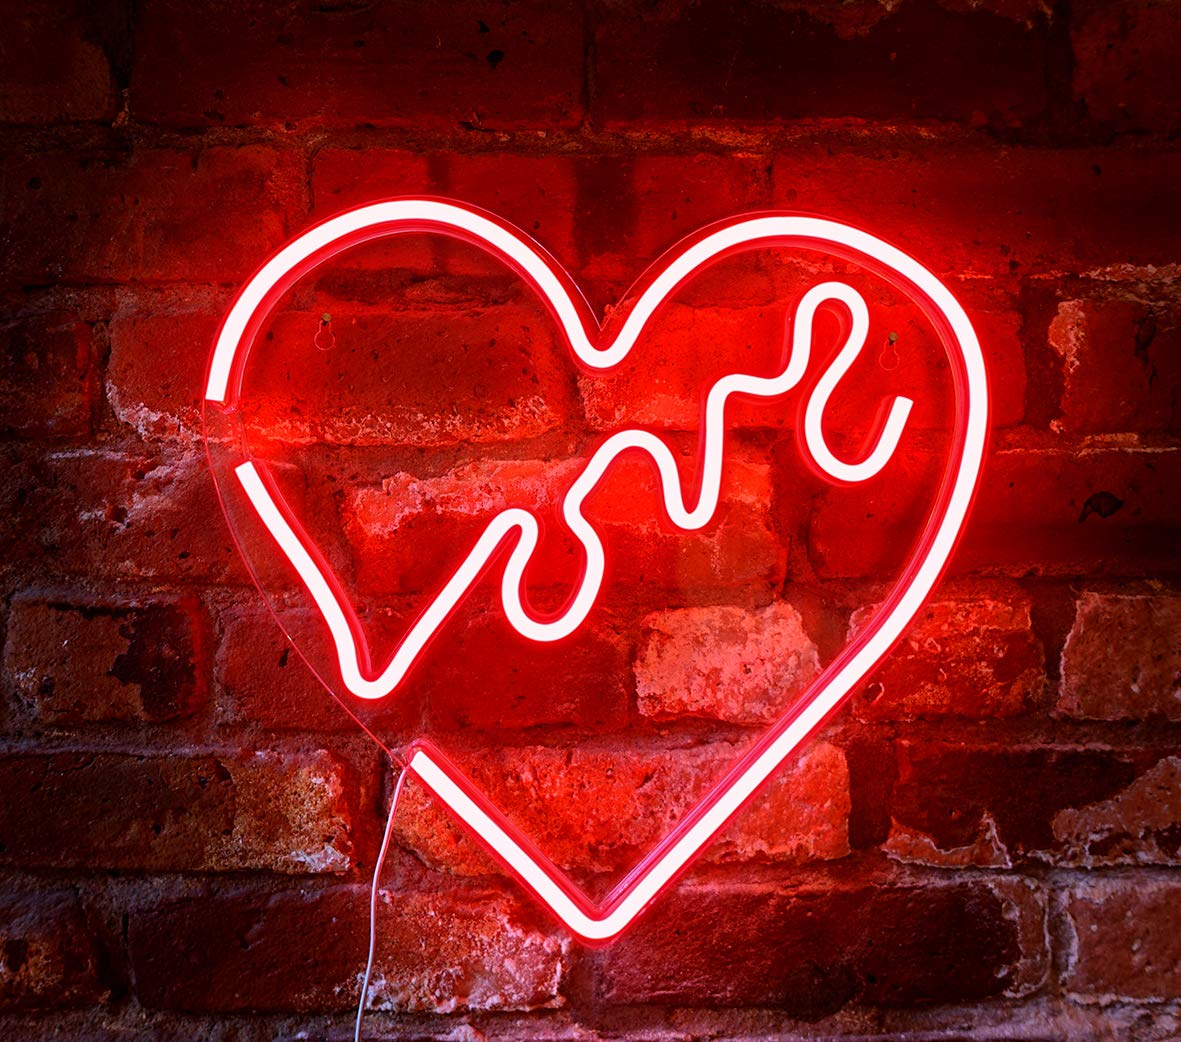 """Isaac Jacobs 14"""" x 14"""" inch LED Neon Red """"Love"""" Heart Wall Sign for Cool Light, Wall Art, Bedroom Decorations, Home Accessories, Party, and Holiday Decor: Powered by USB Wire (Heart)"""